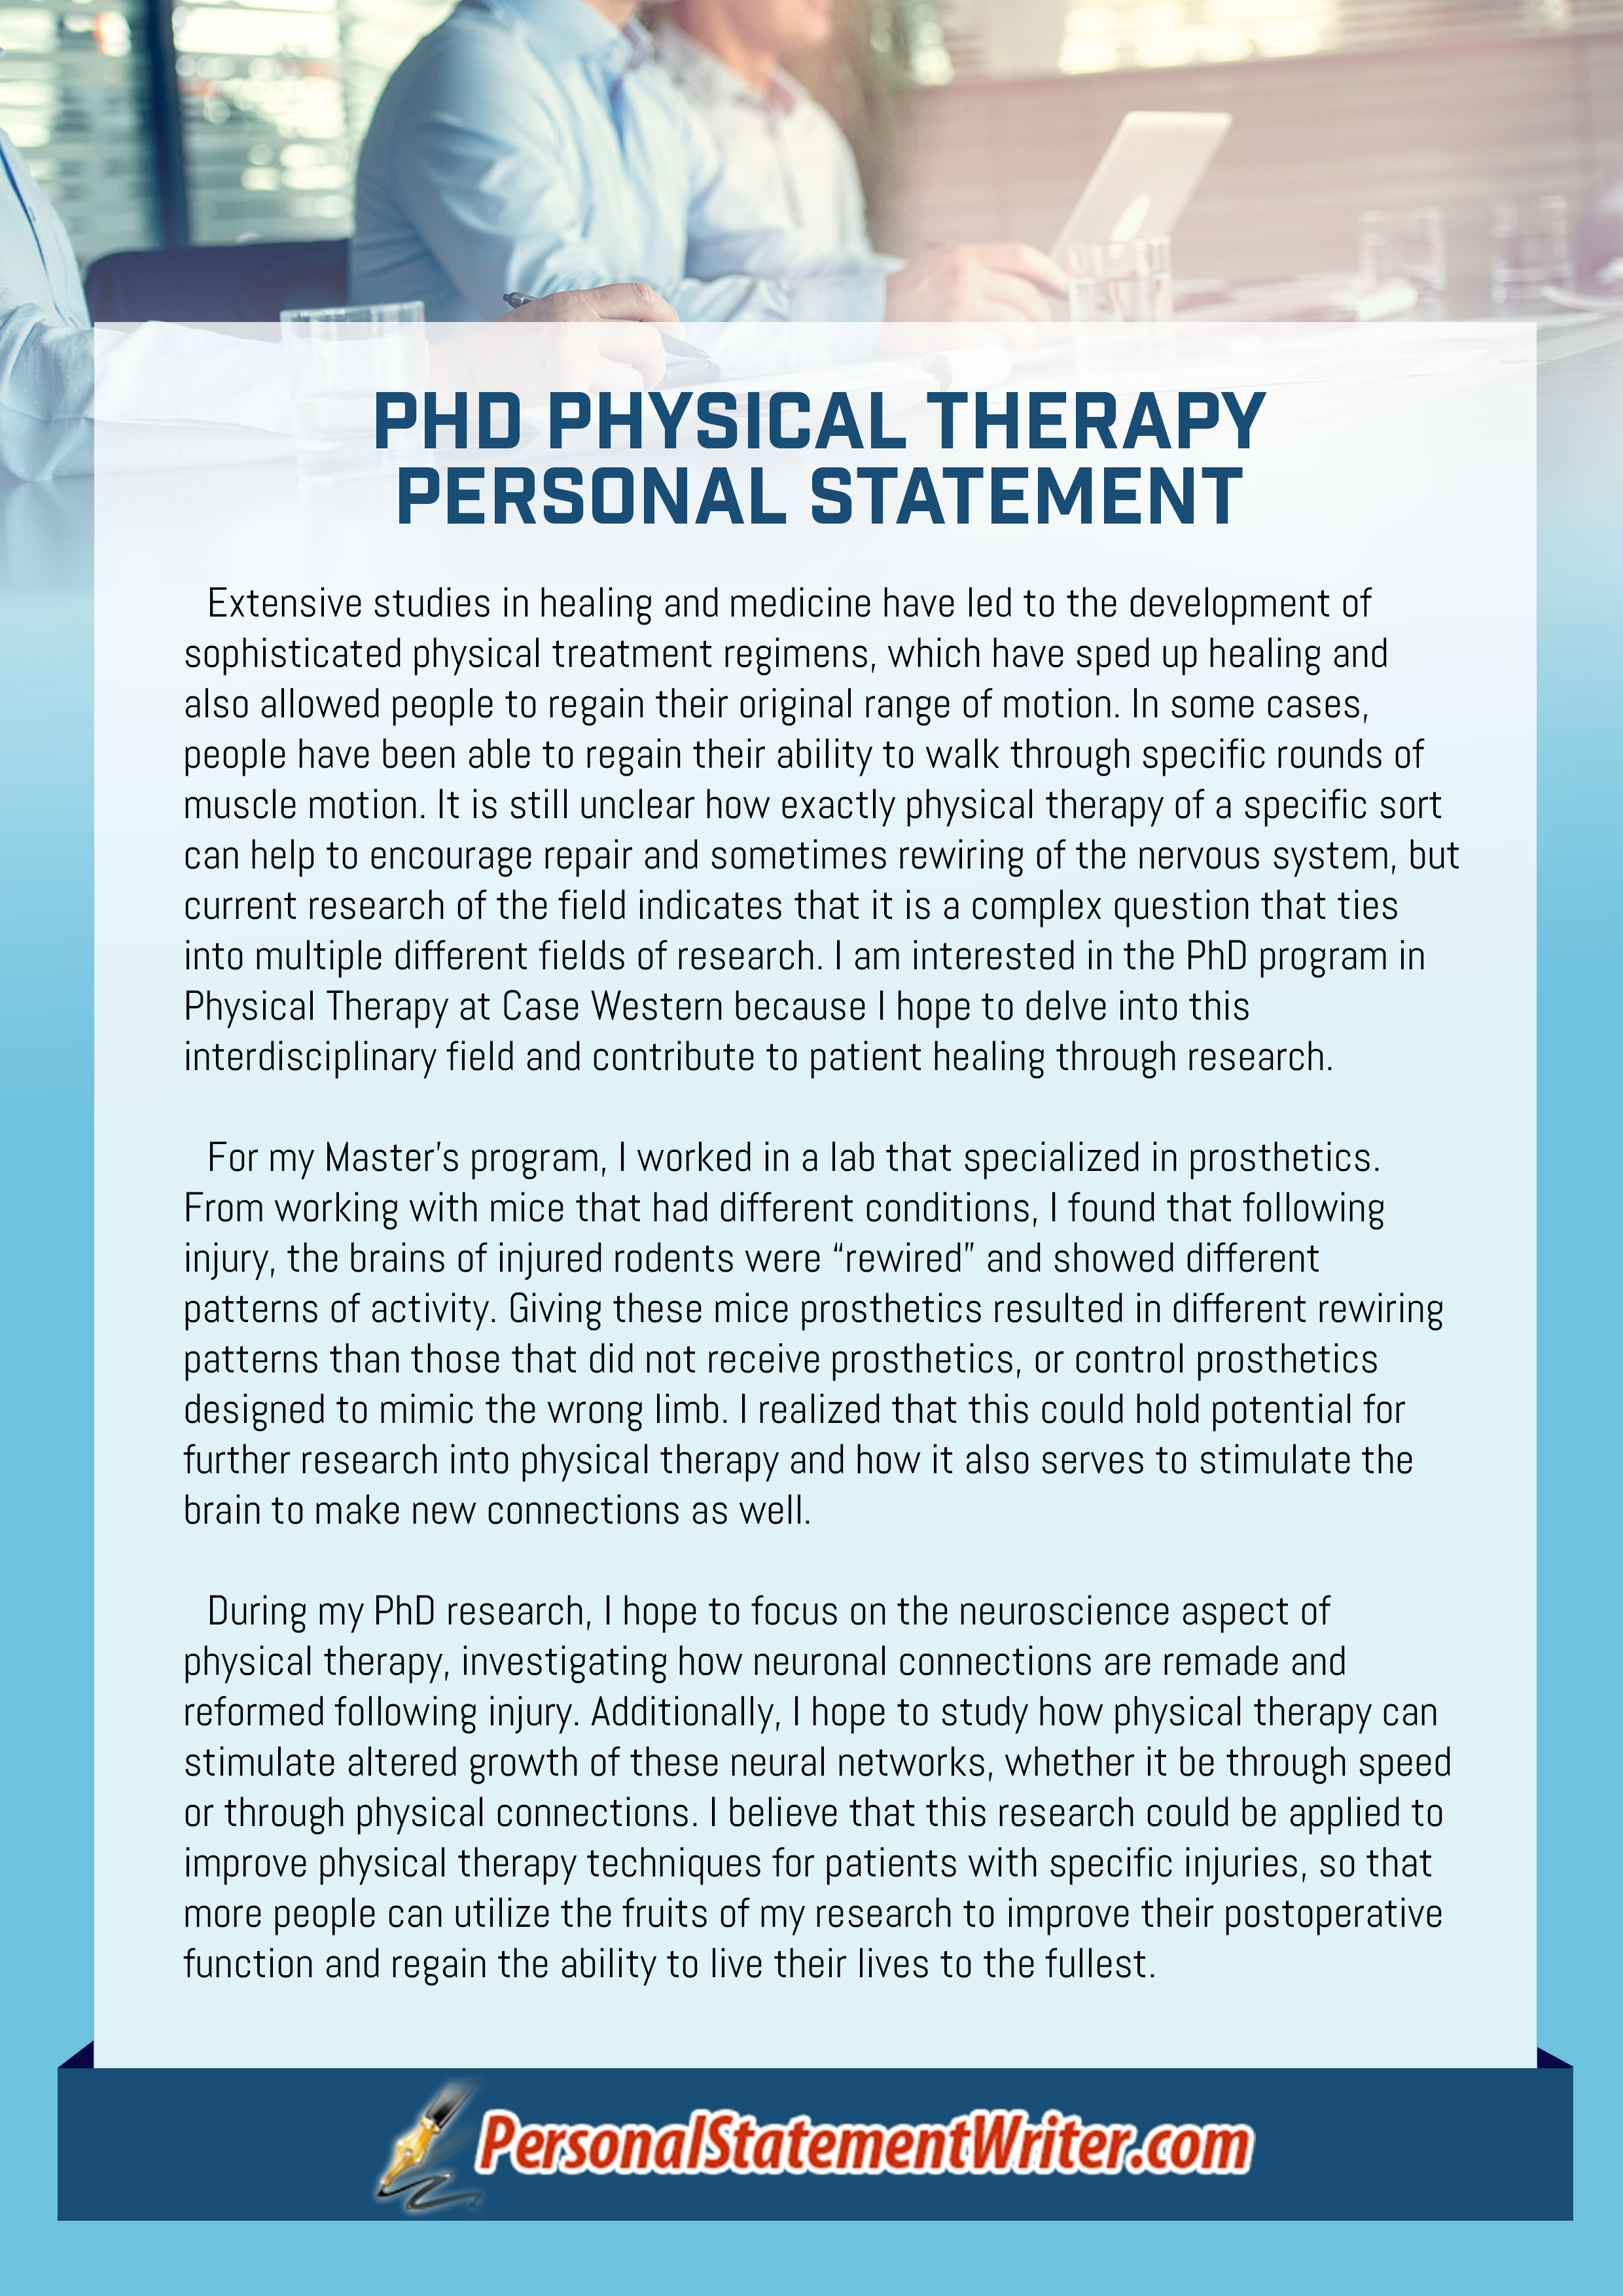 phd physical therapy personal statement